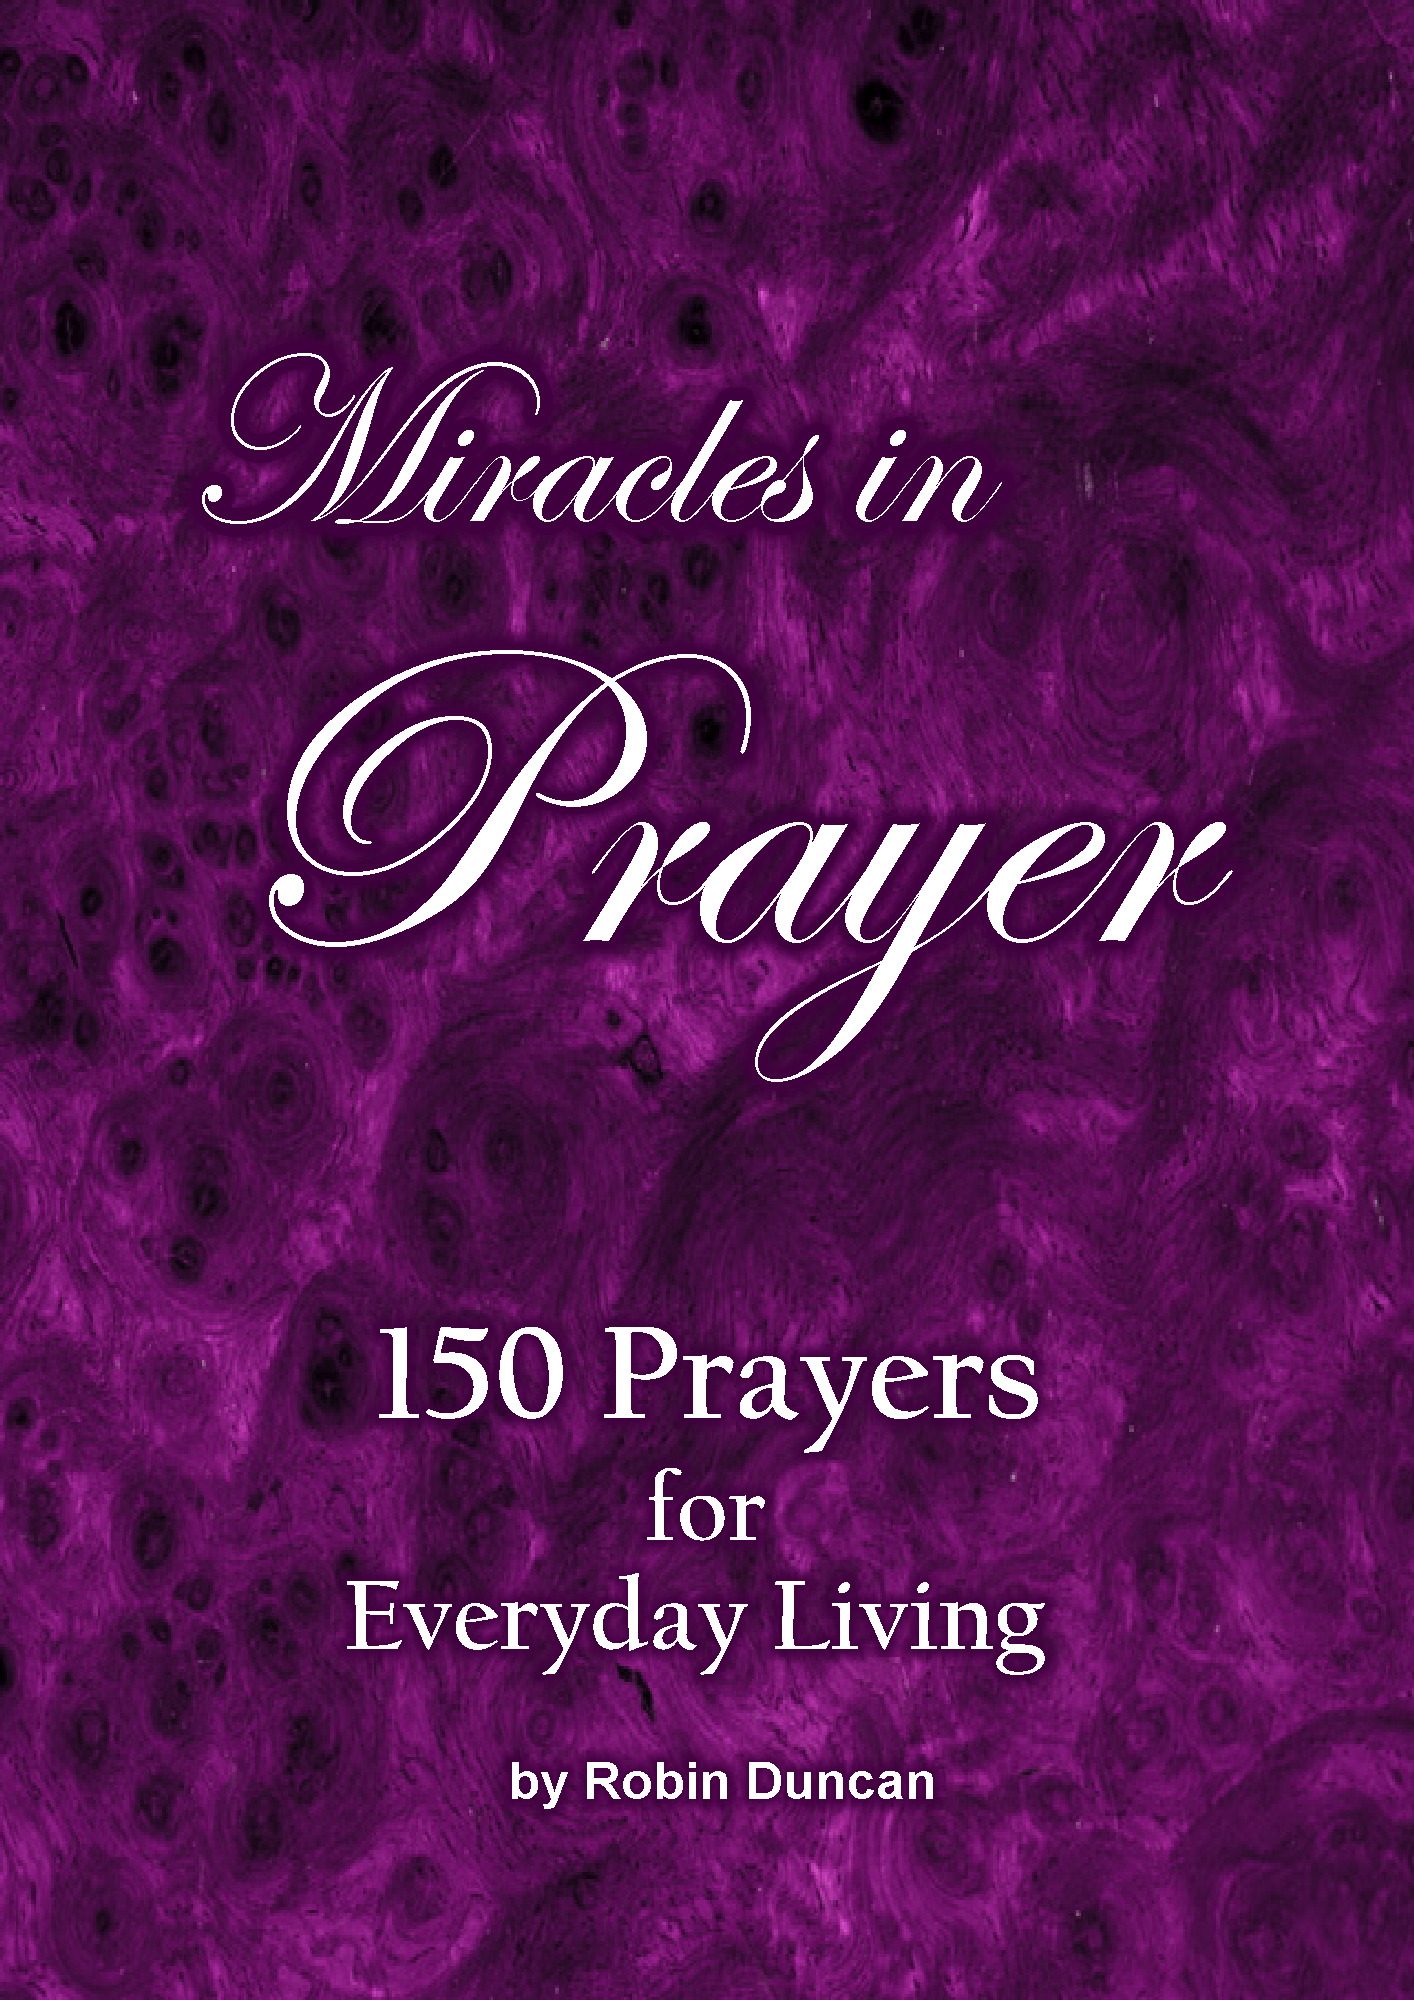 Miracles in Prayer Book by Robin Duncan